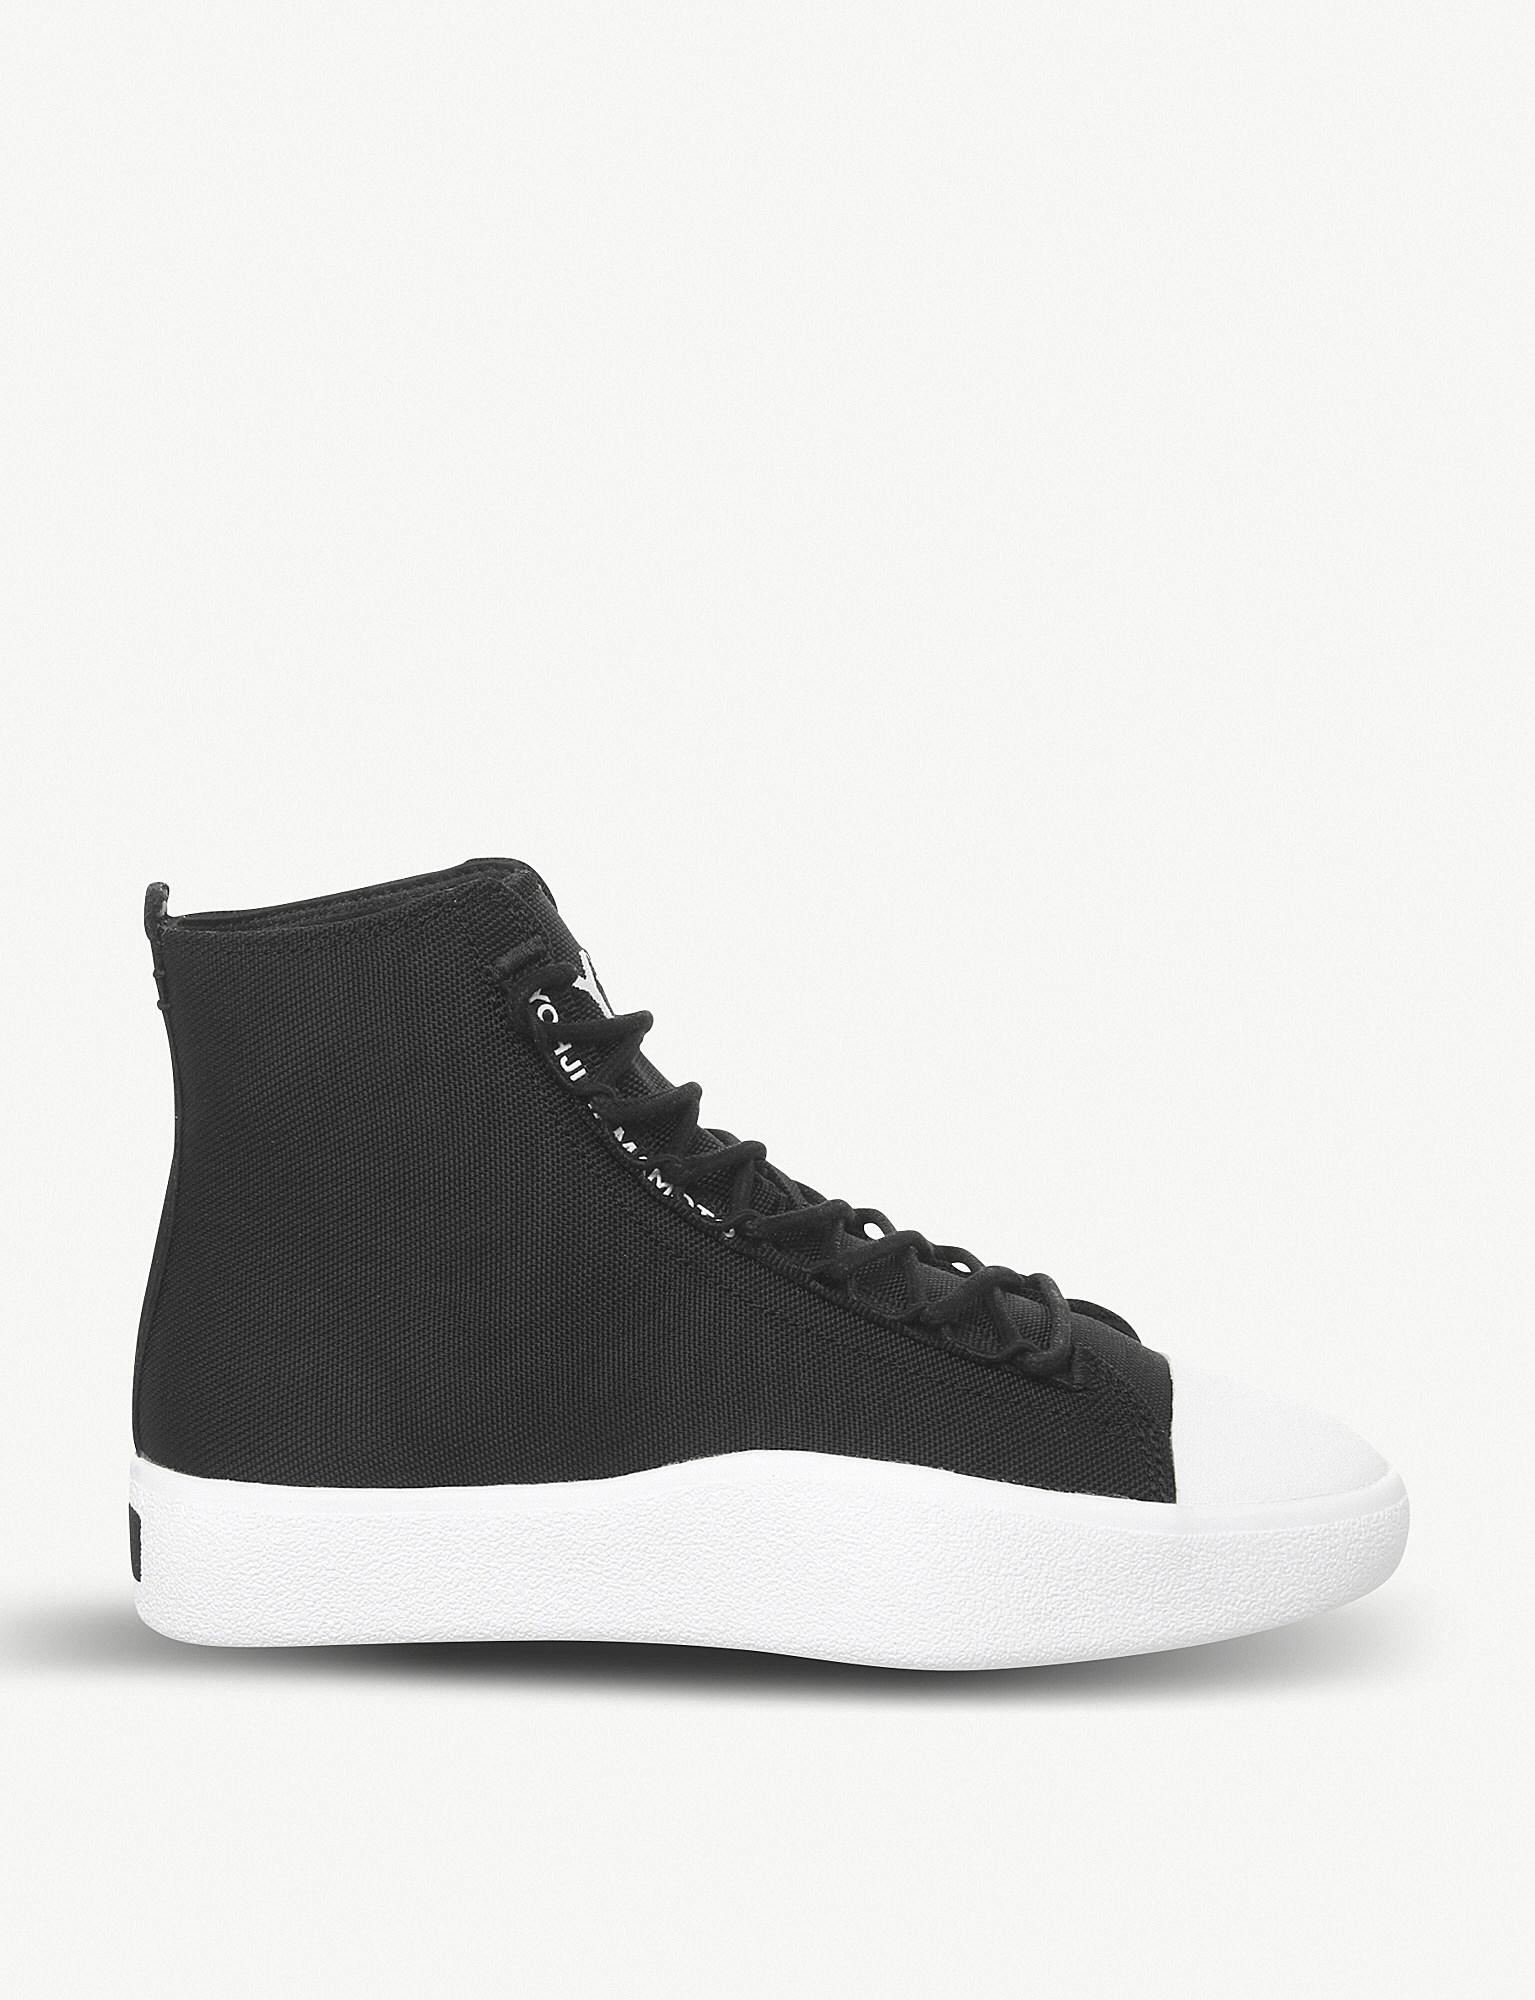 2293b478858c Lyst - Y-3 Bashyo Leather And Canvas Trainers in Black for Men